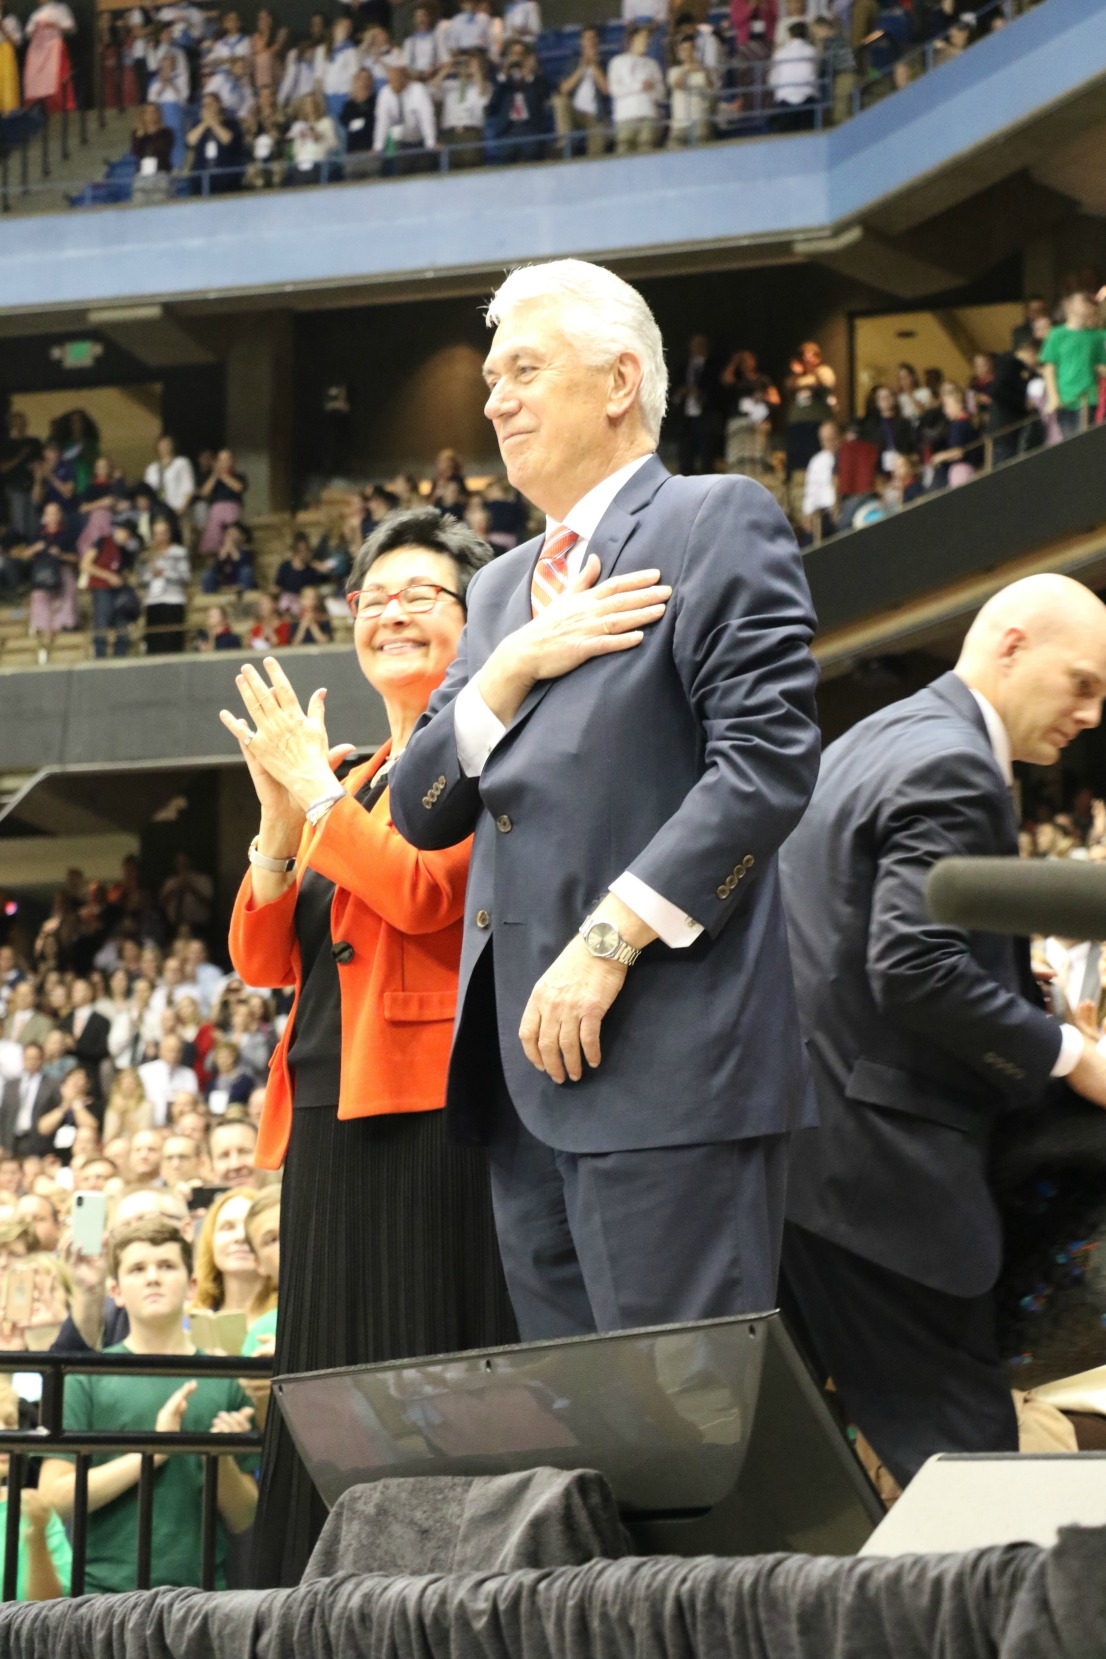 President Uchtdorf and his wife greet the youth at the Meridian Idaho Youth Cultural Celebration.